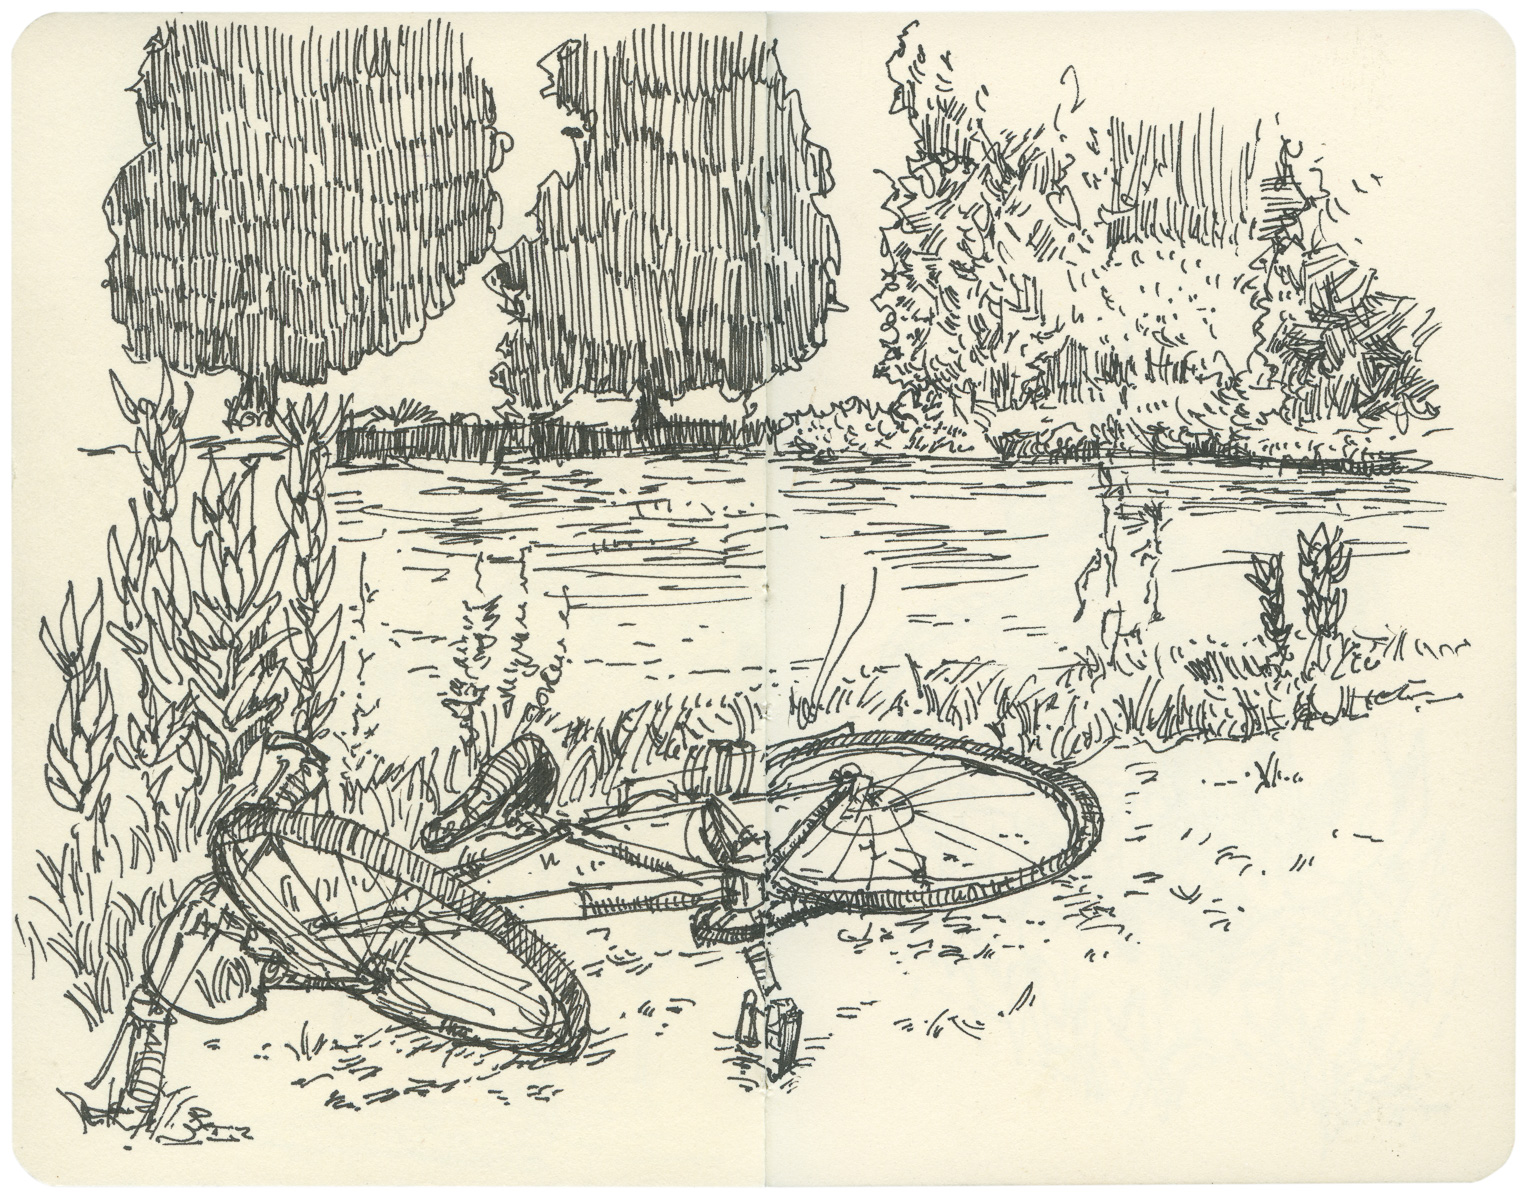 Sketchbook: Rest Stop by the Pond